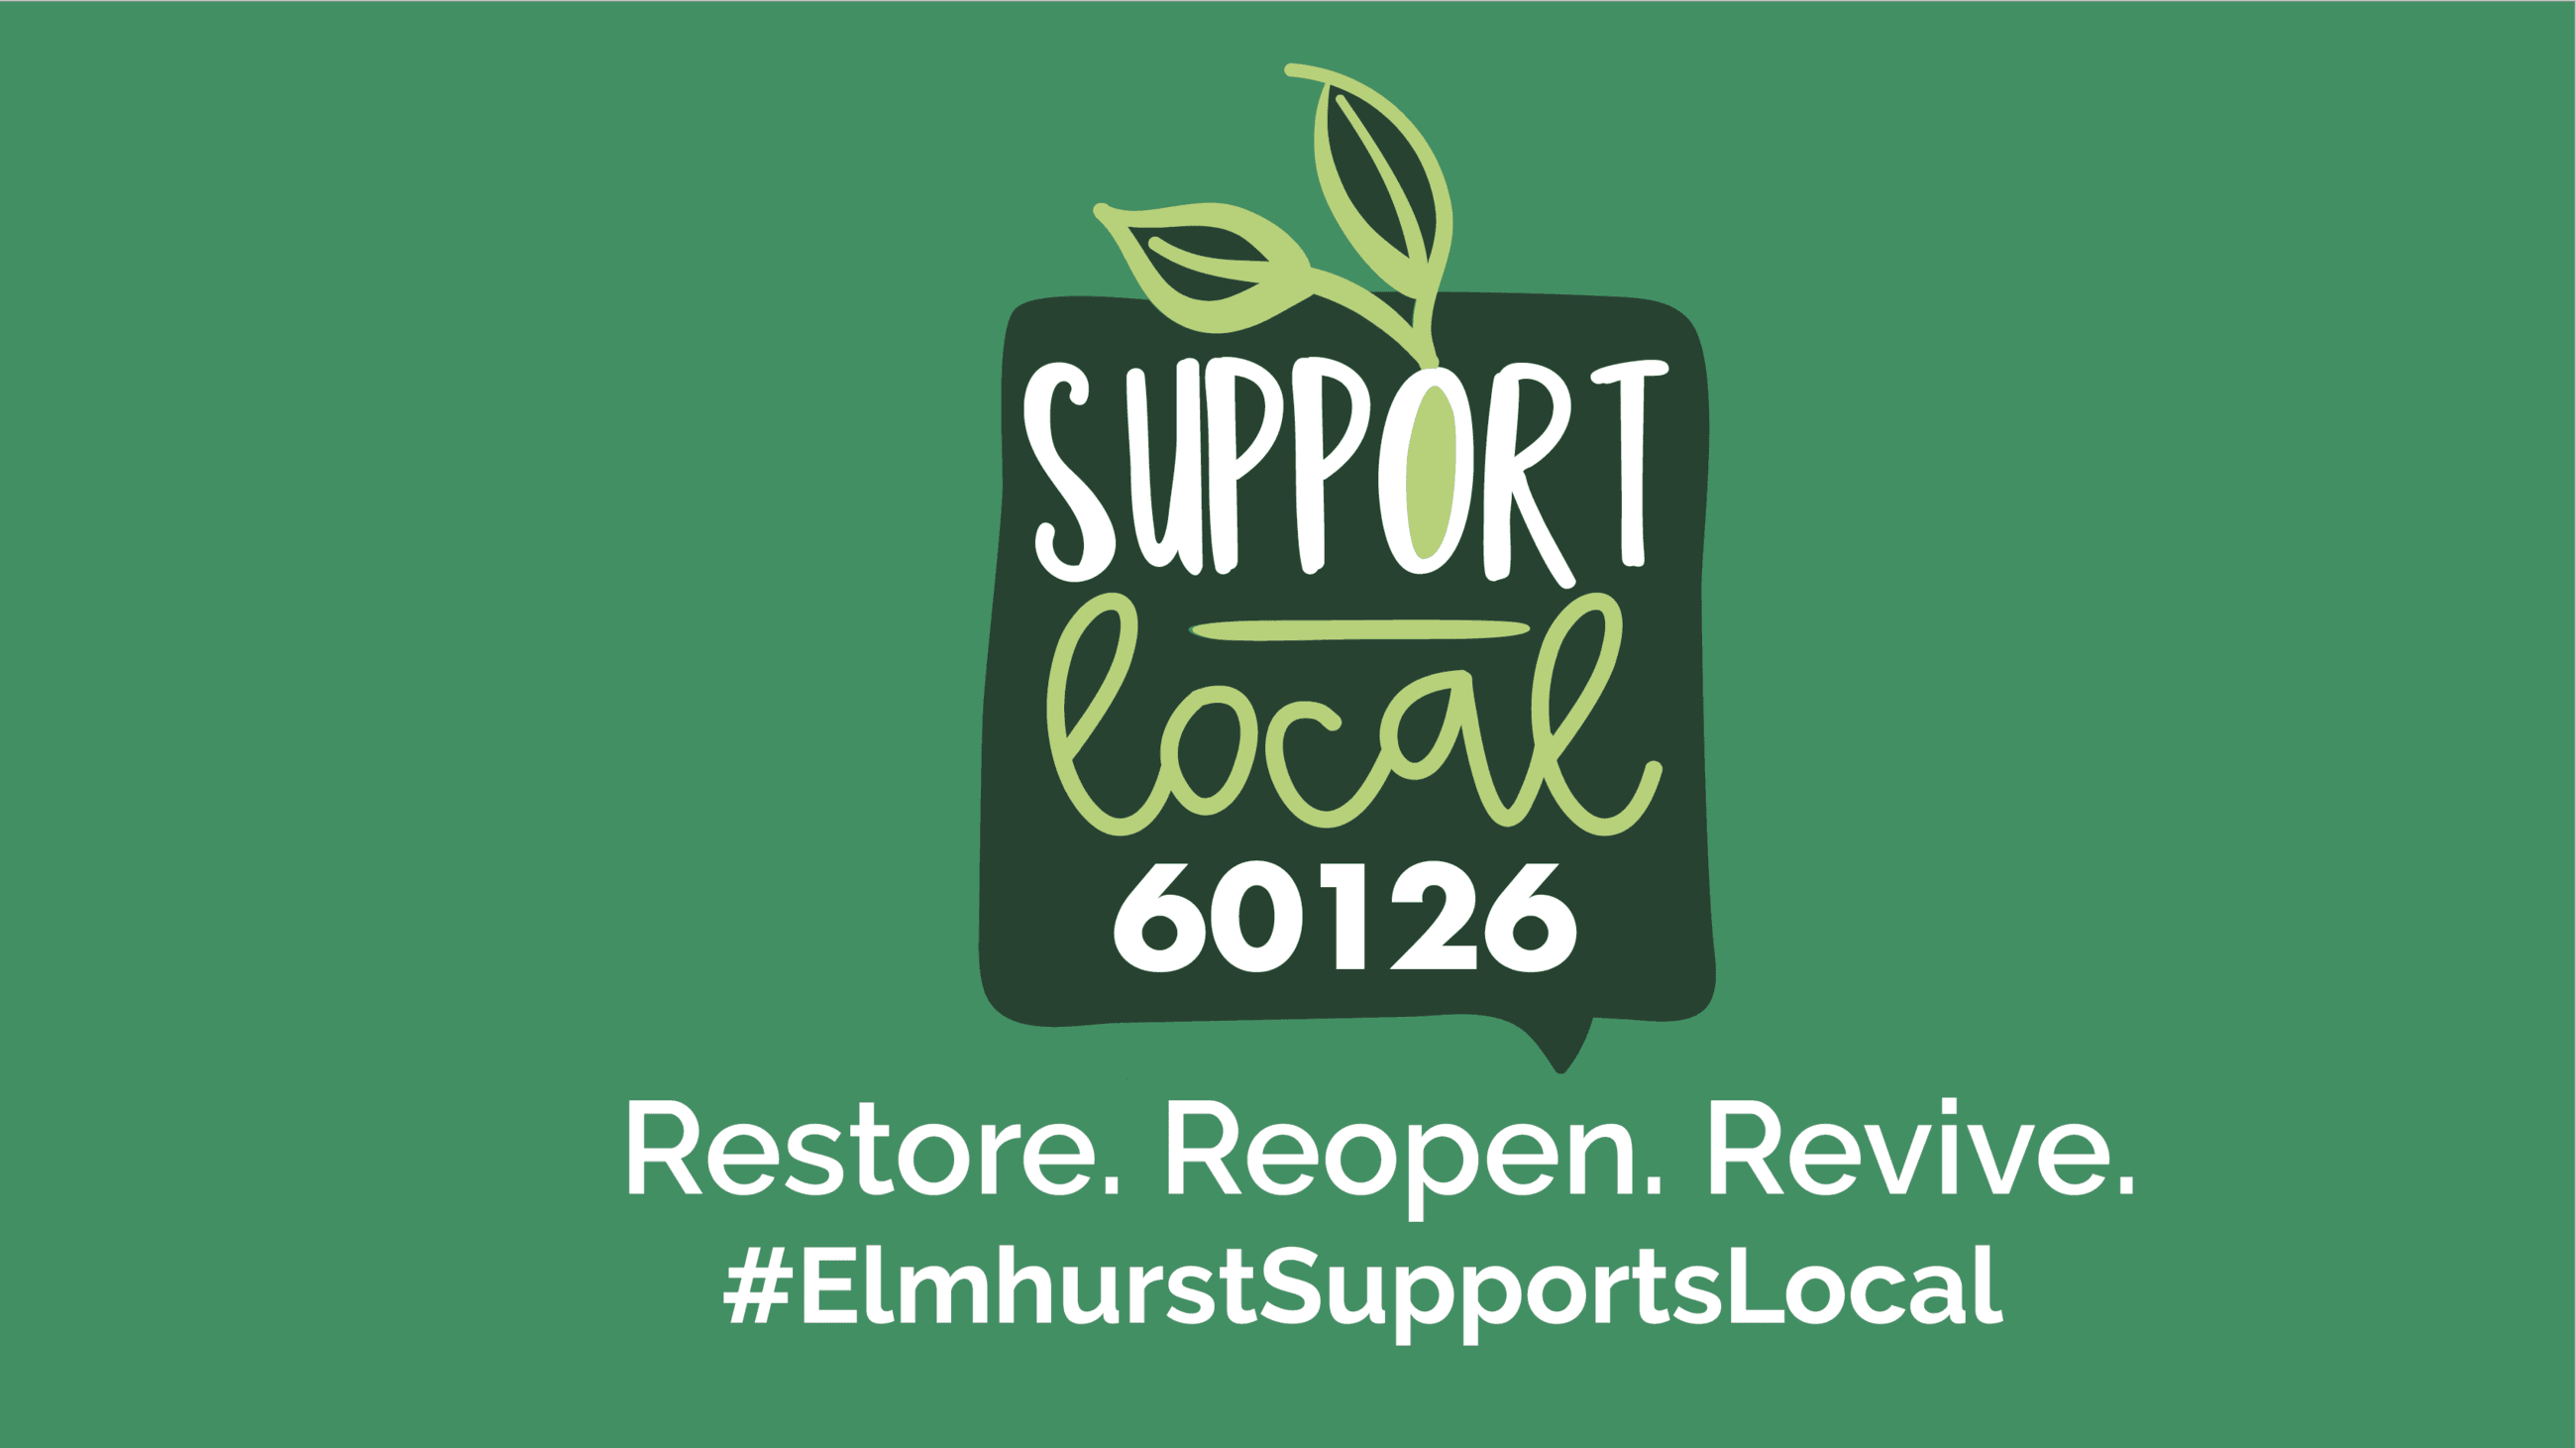 Elmhurst Supports Local